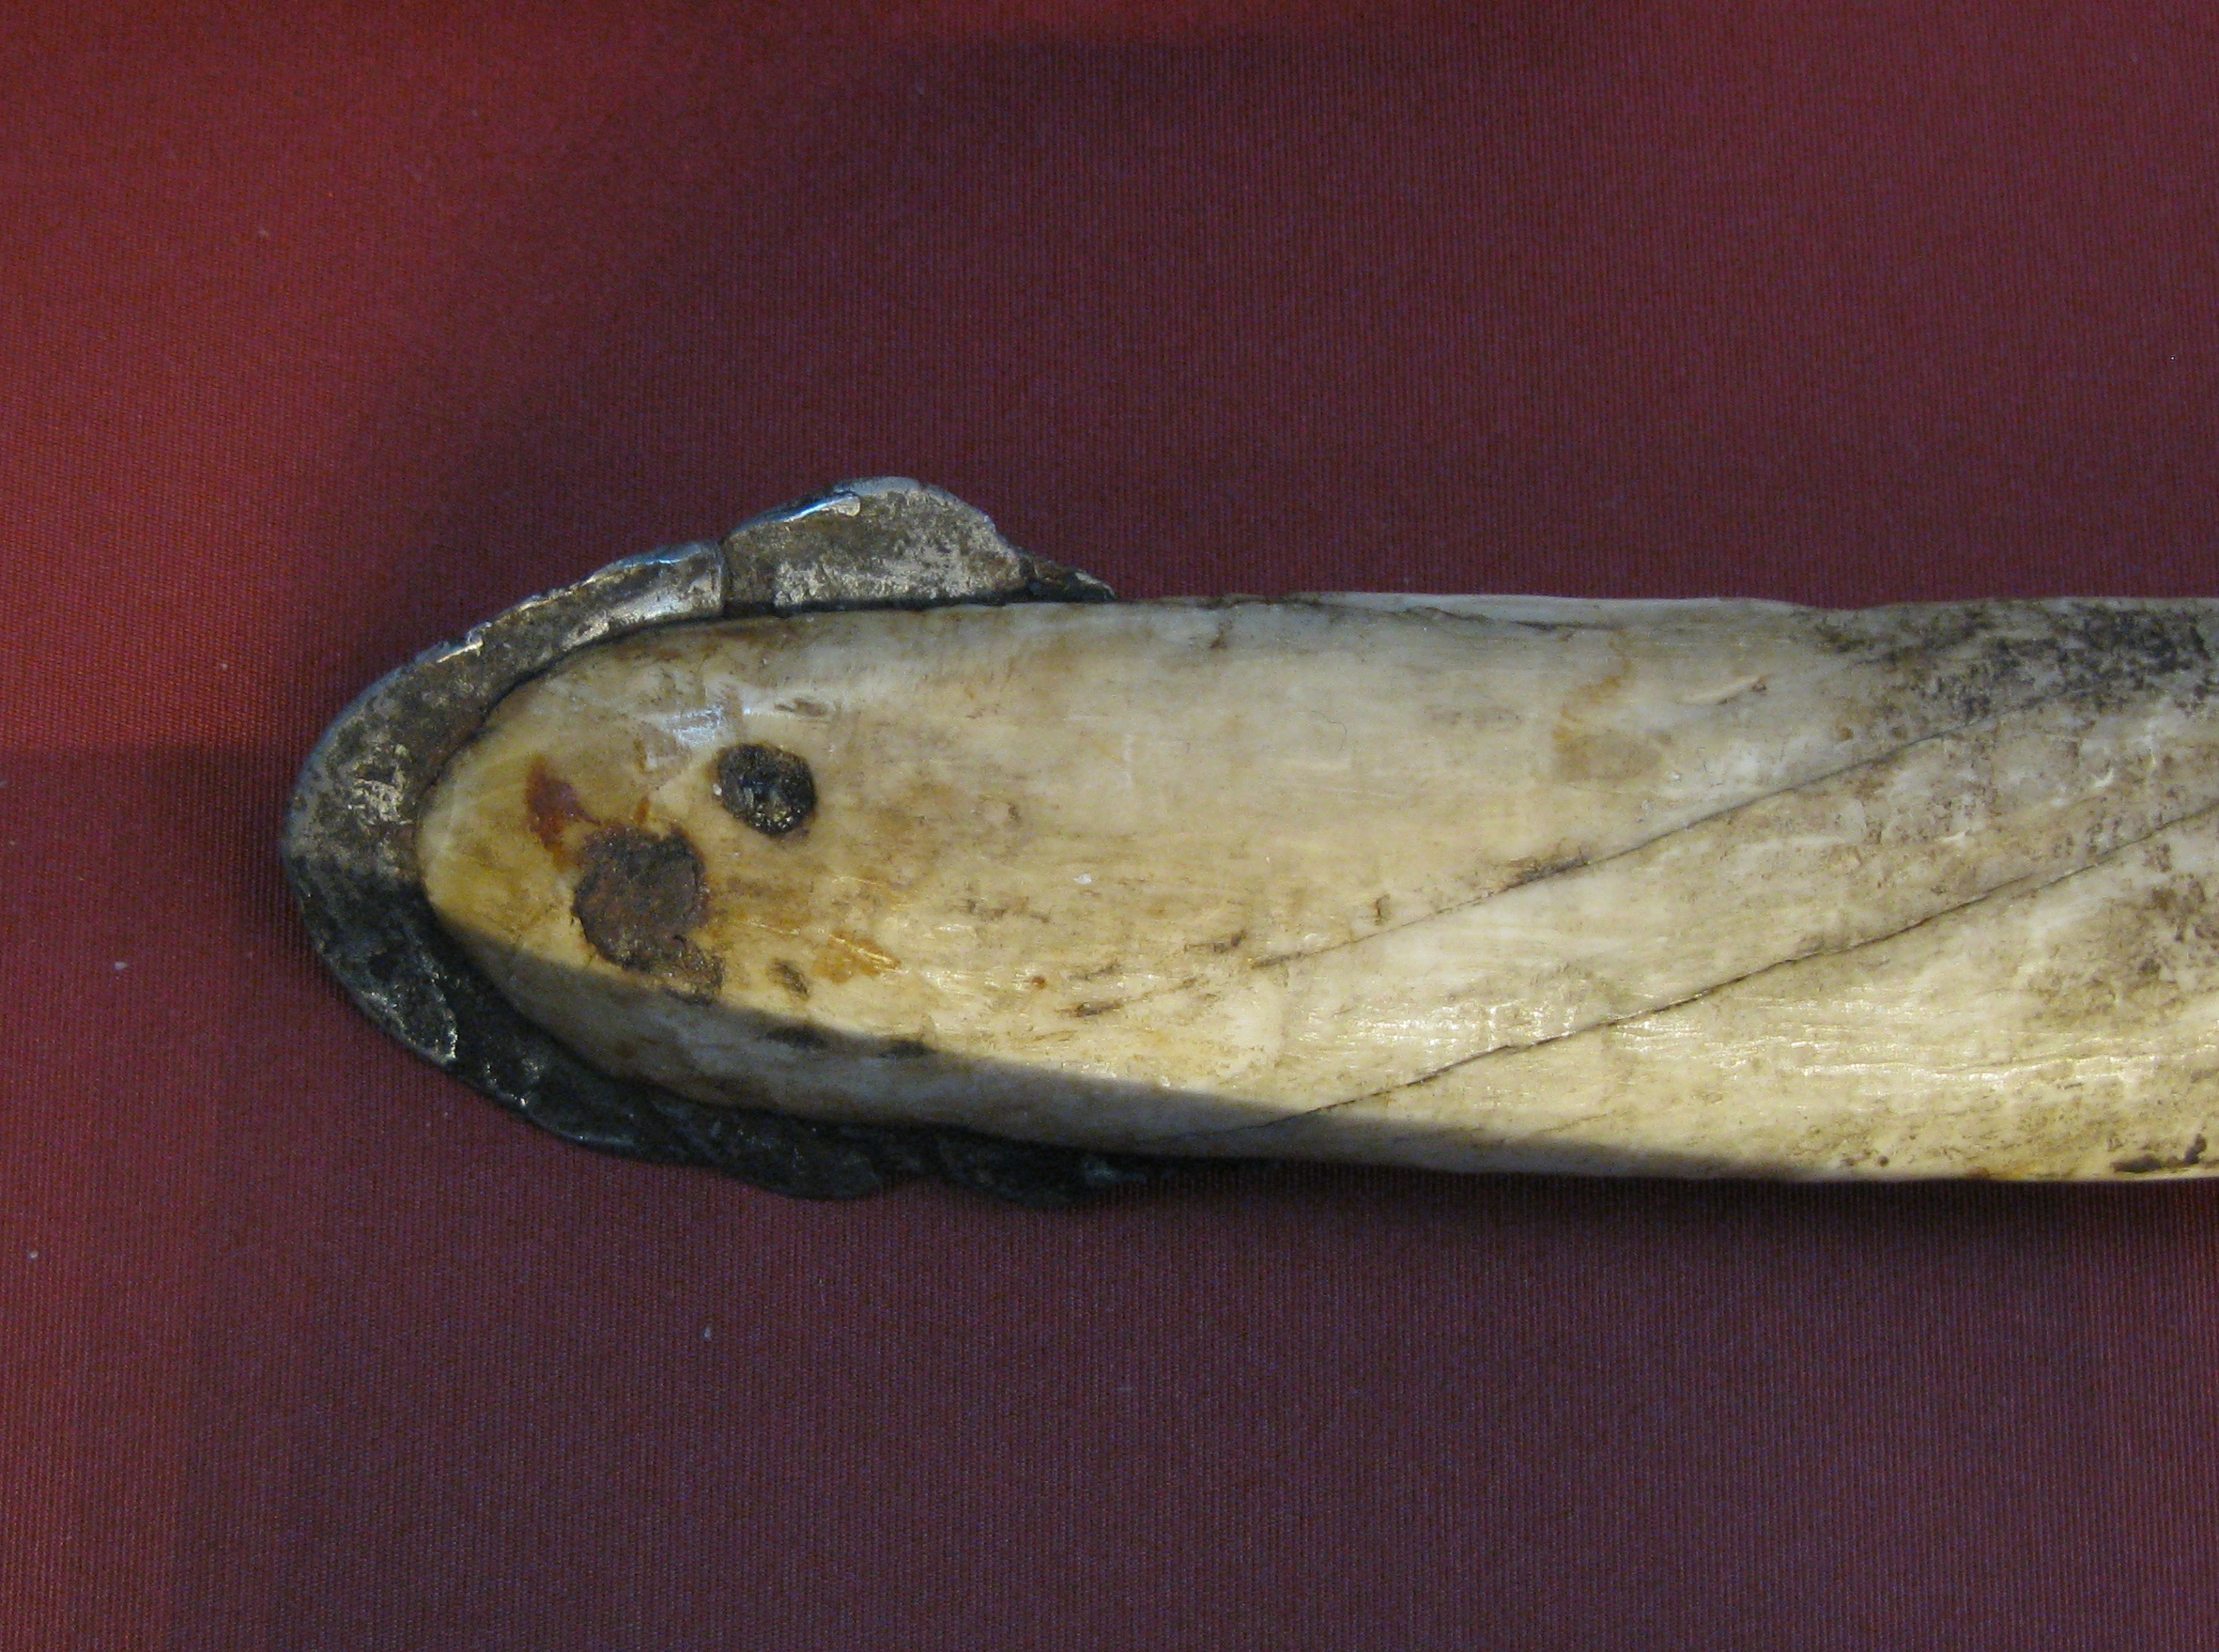 Ivory lance tipped with meteoric iron.